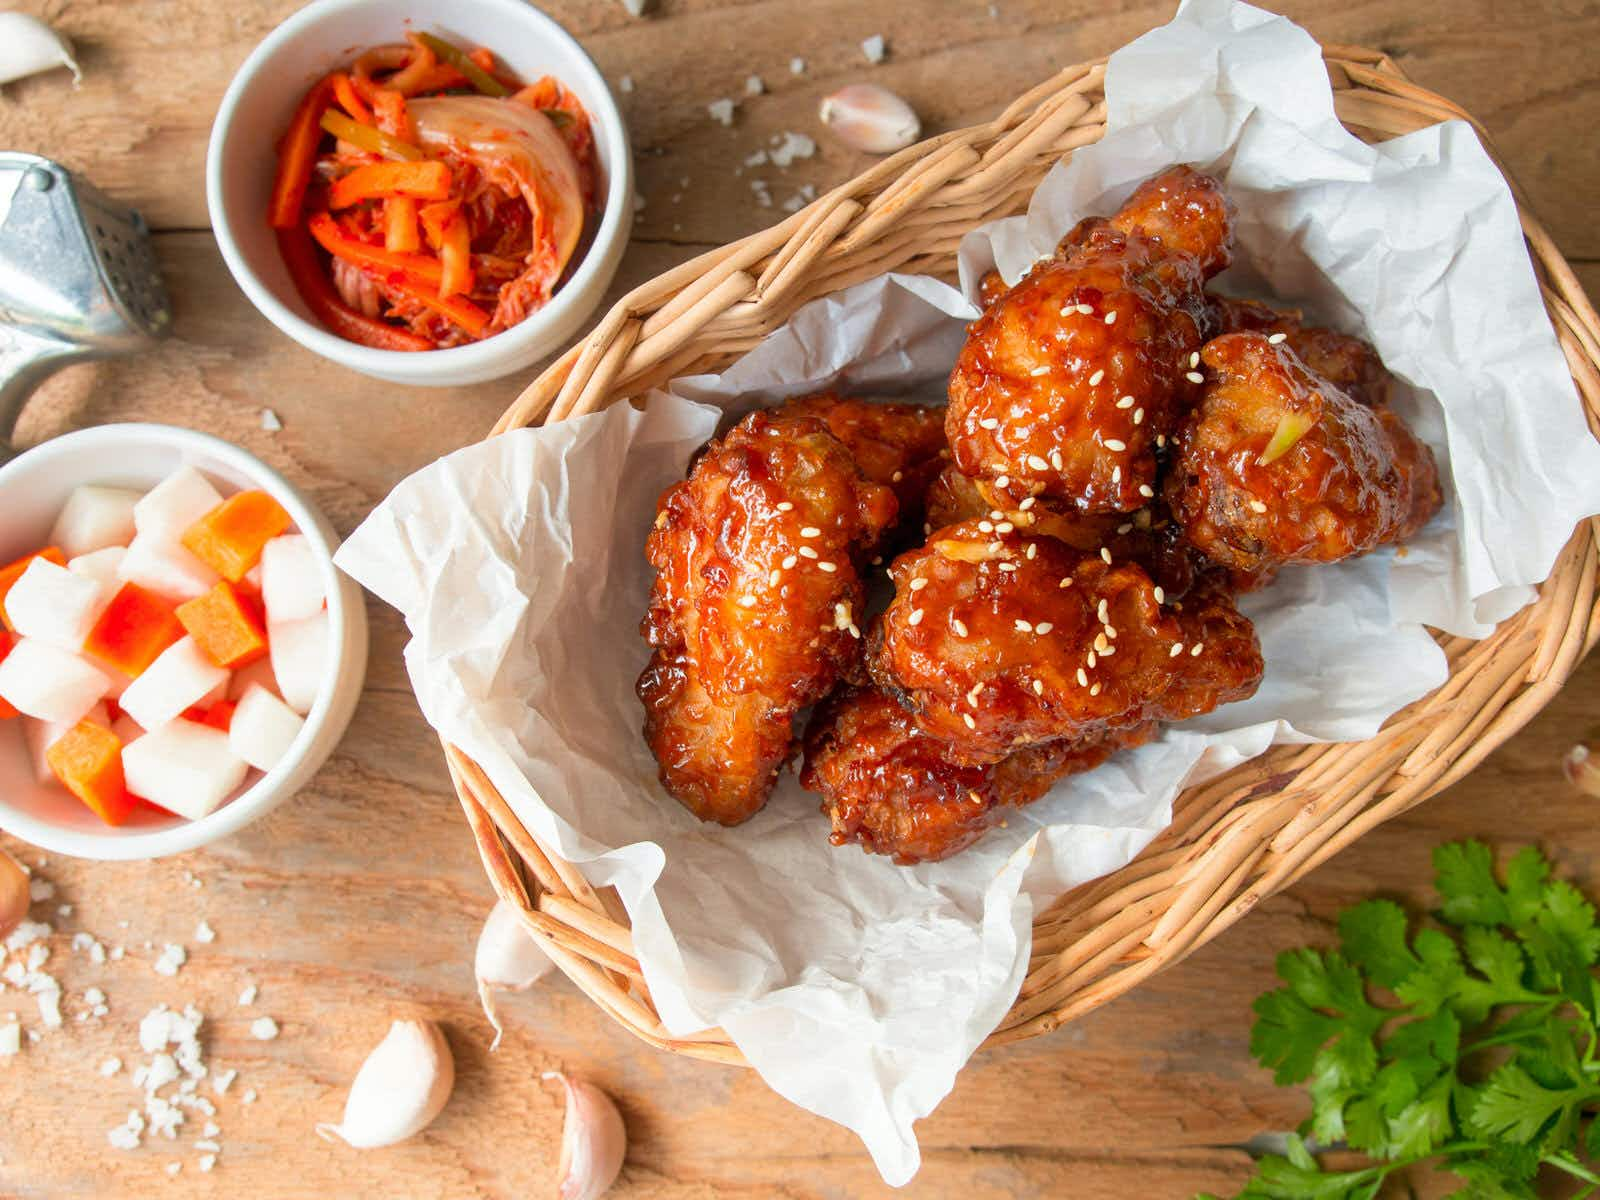 Not Colonel Sanders: Korean fried chicken is double-fried or marinated and served with beer © pada smith / Shutterstock